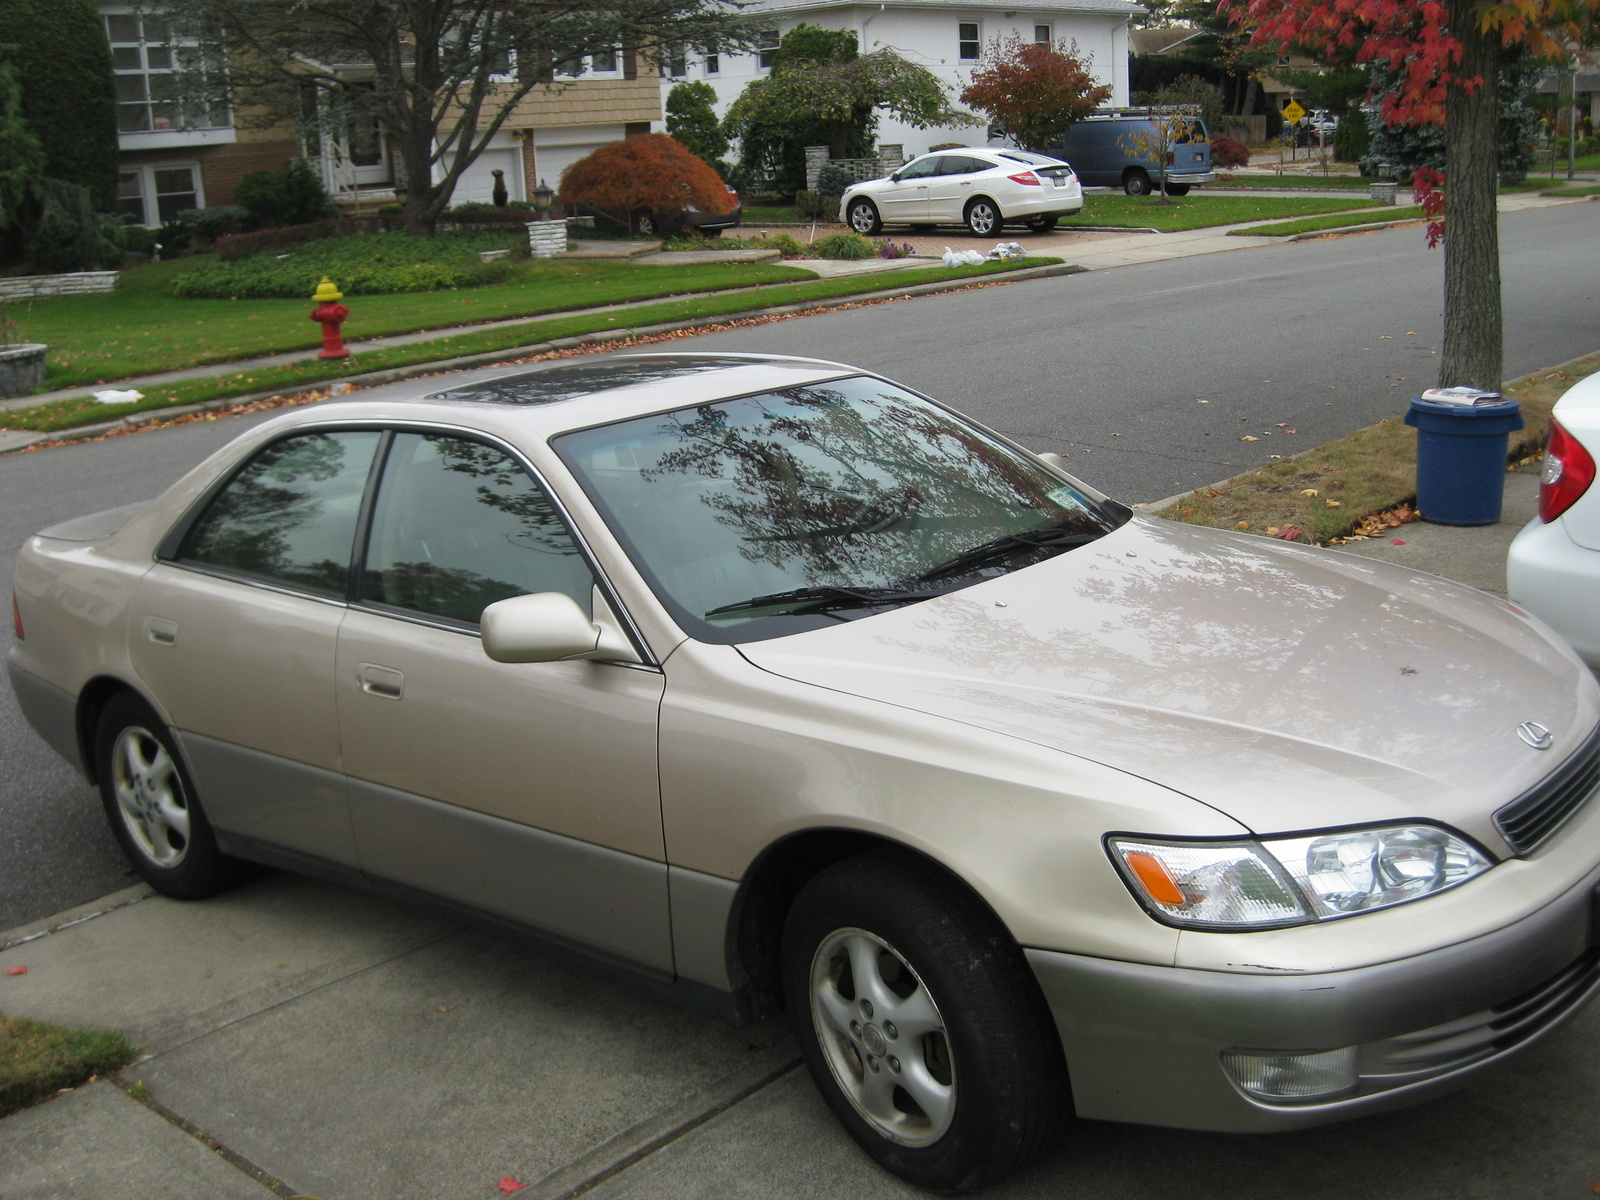 similiar 1998 lexus es300 engine keywords engine diagram in addition 1998 lexus es 300 besides 1998 lexus es